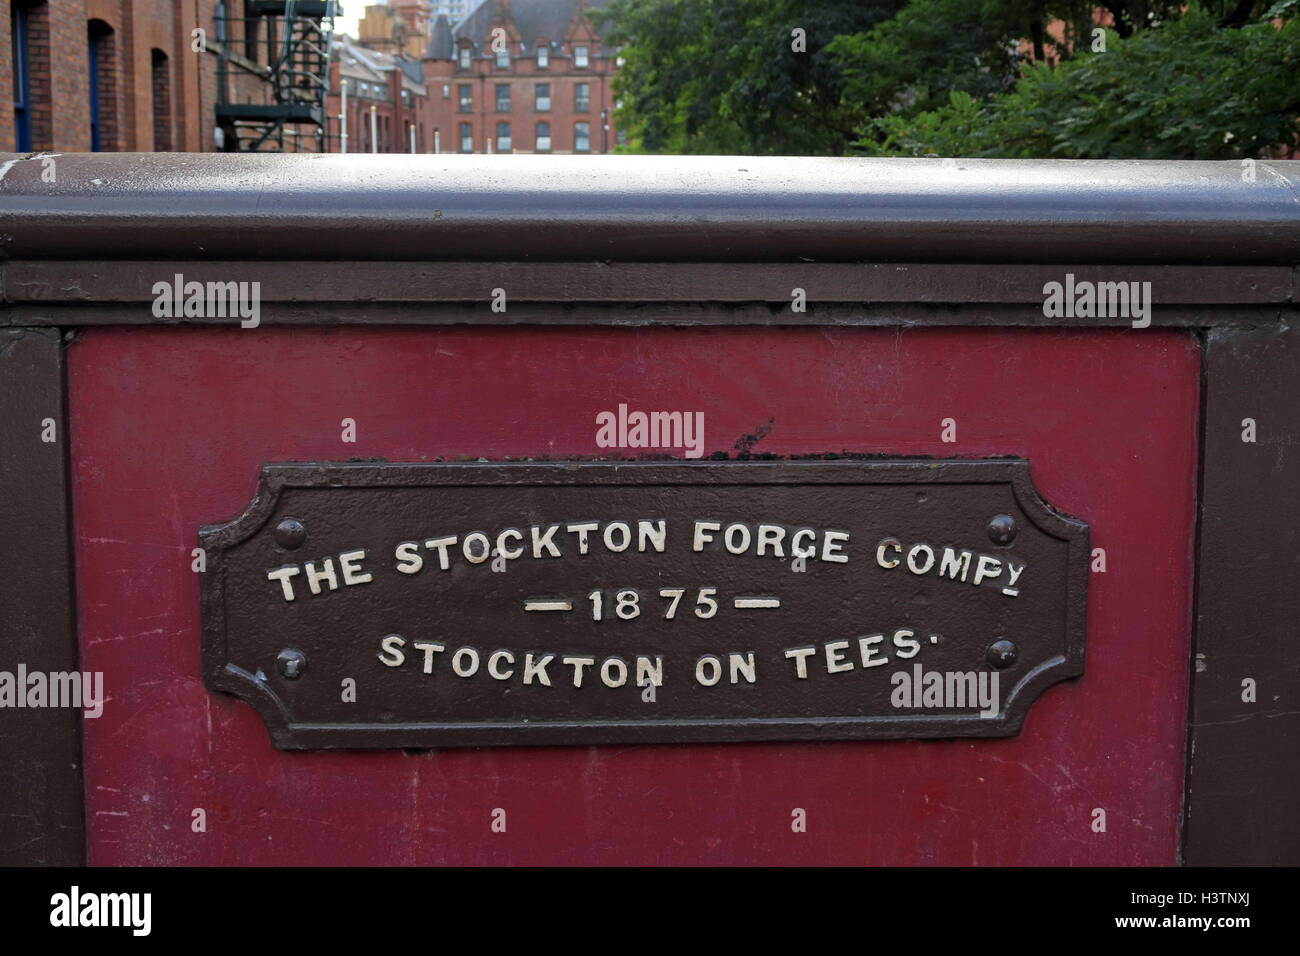 Laden Sie dieses Alamy Stockfoto Stockton Forge Company, Canal St Gay Village, Manchester, England - H3TNXJ